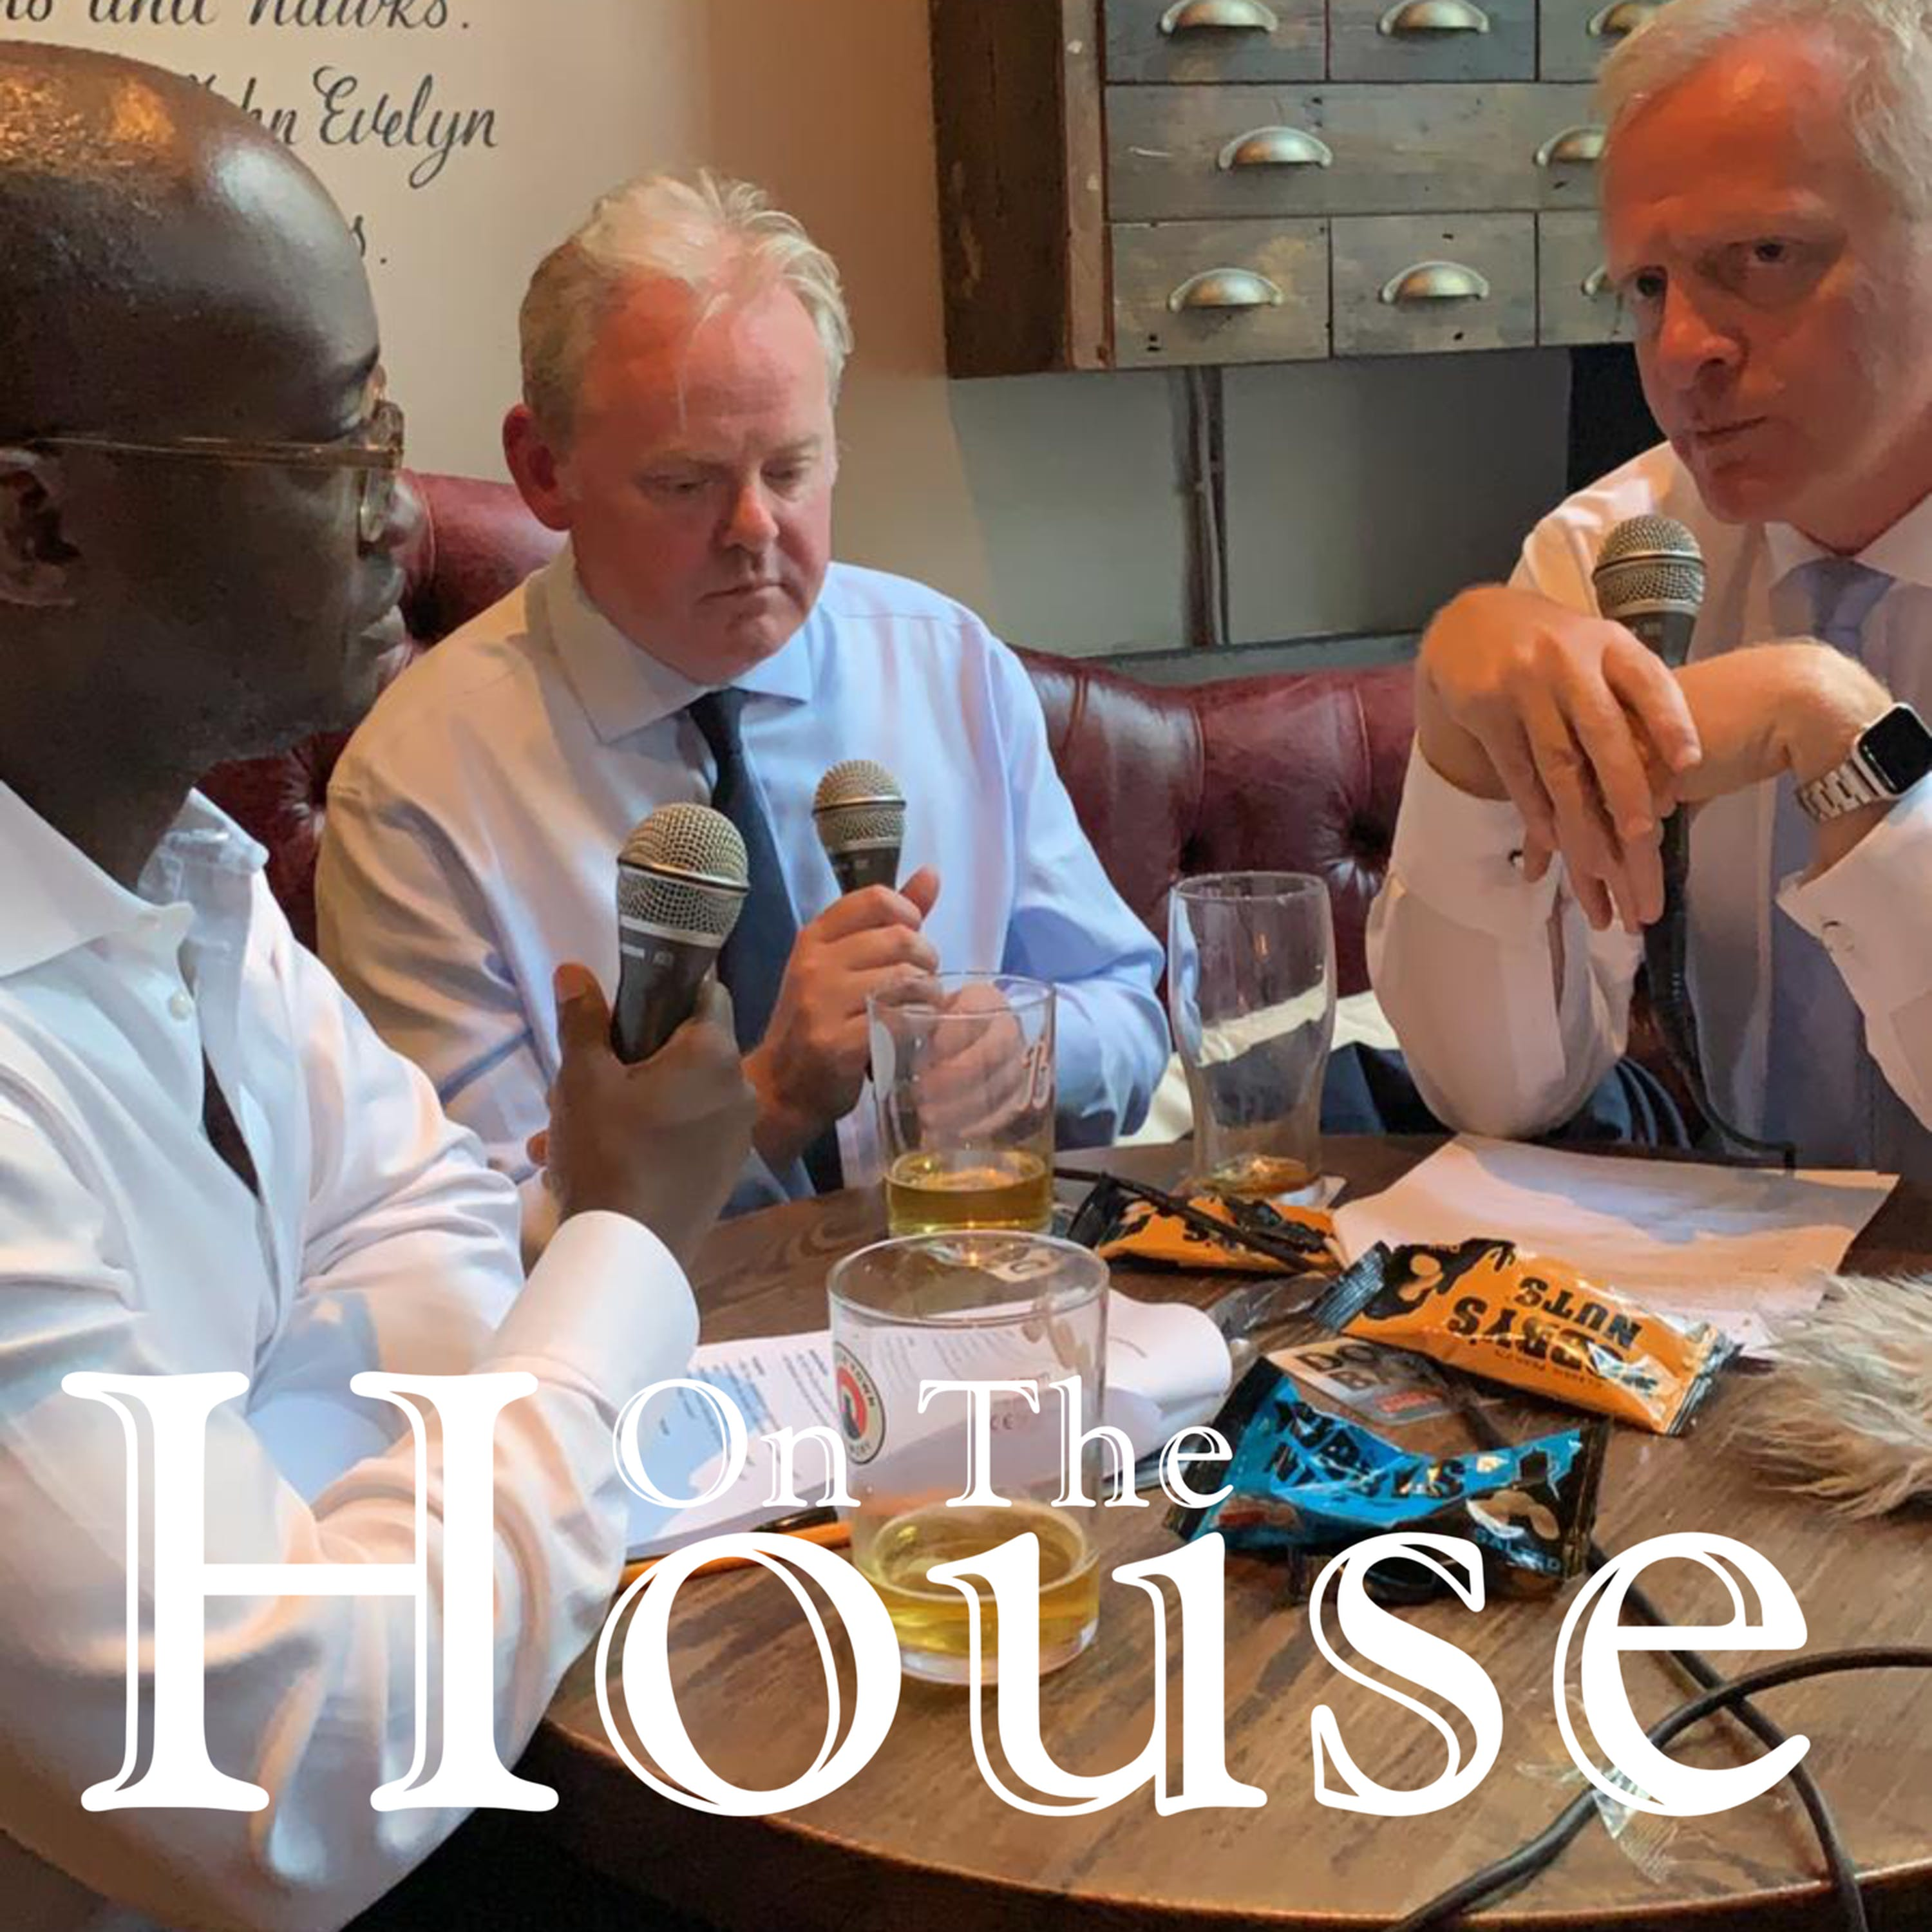 A ROUND WITH THE REBELS: MPs Phillip Lee and Sam Gyimah plus special guest Guto Bebb